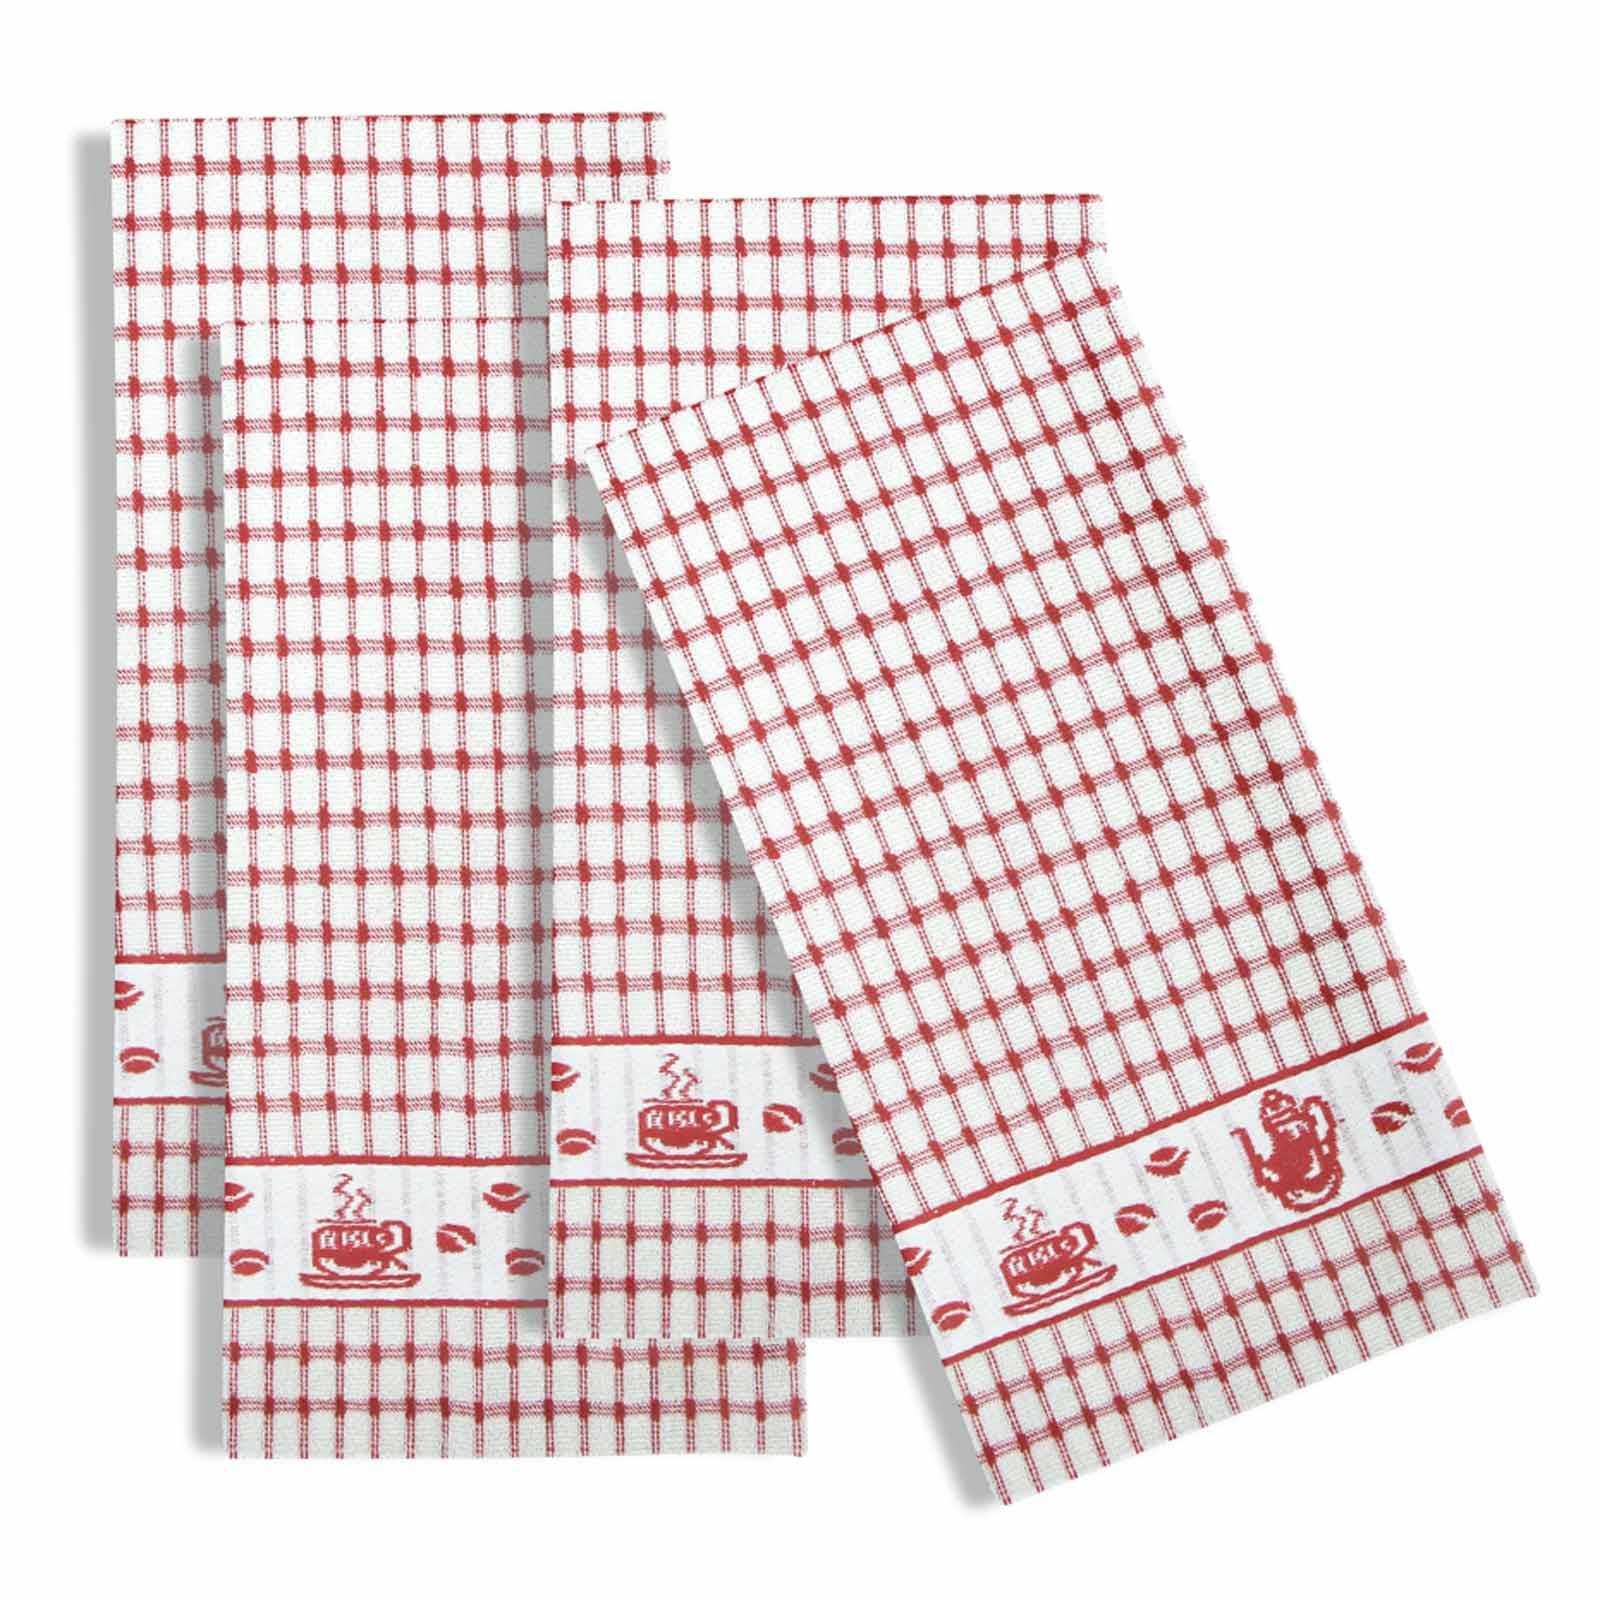 Packs-of-2-4-6-12-Tea-Towels-100-Cotton-Terry-Kitchen-Dish-Drying-Towel-Sets thumbnail 42